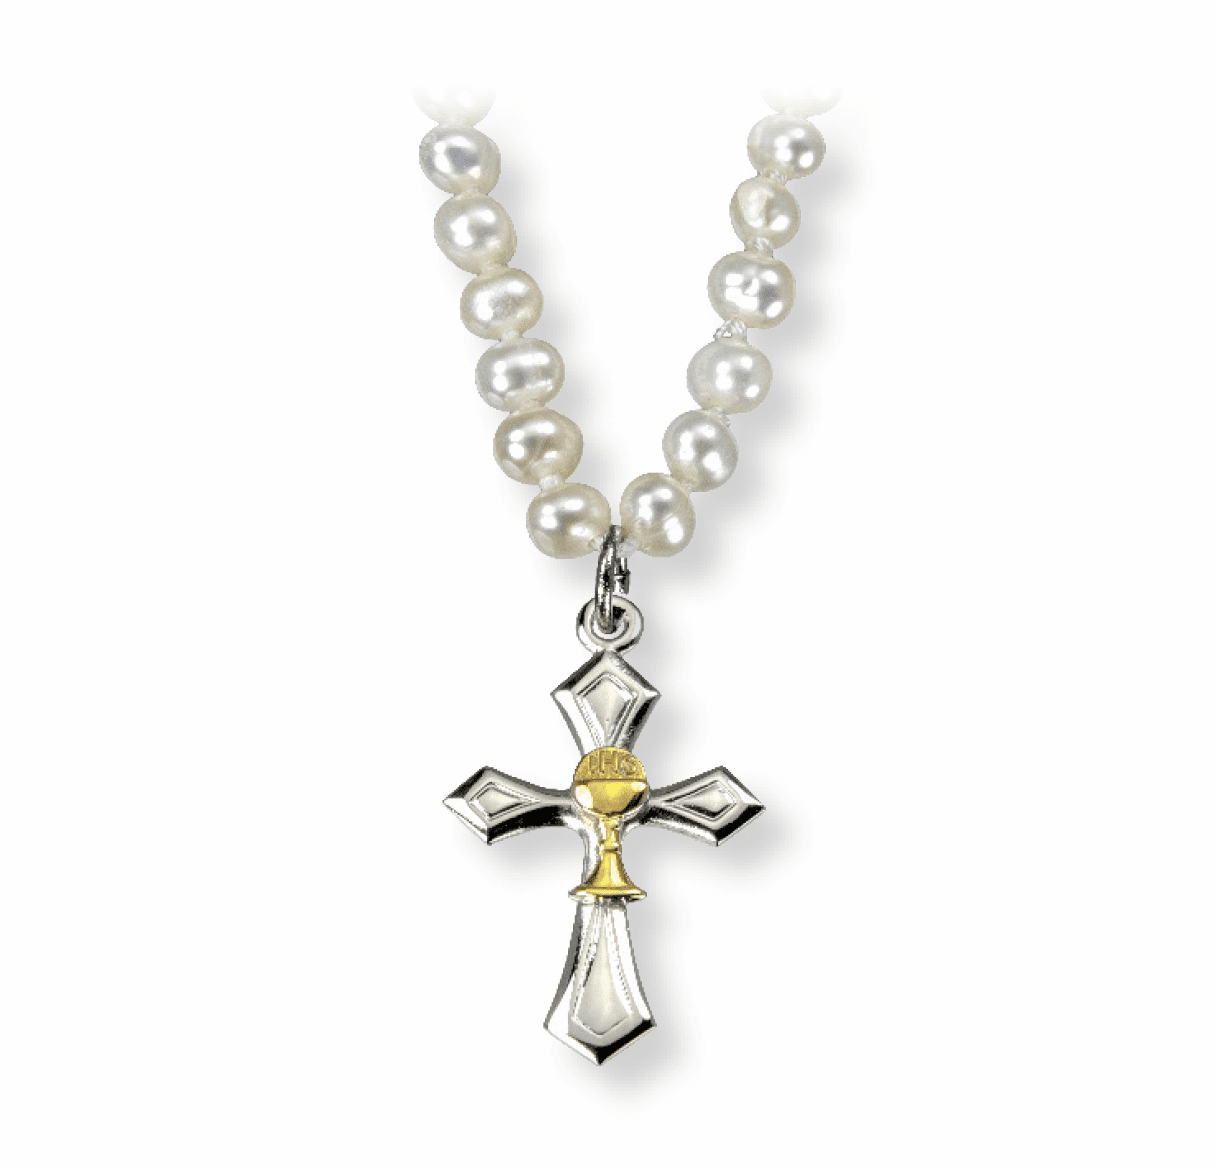 HMH Religious Freshwater Pearl and Faux Pearl Jewelry